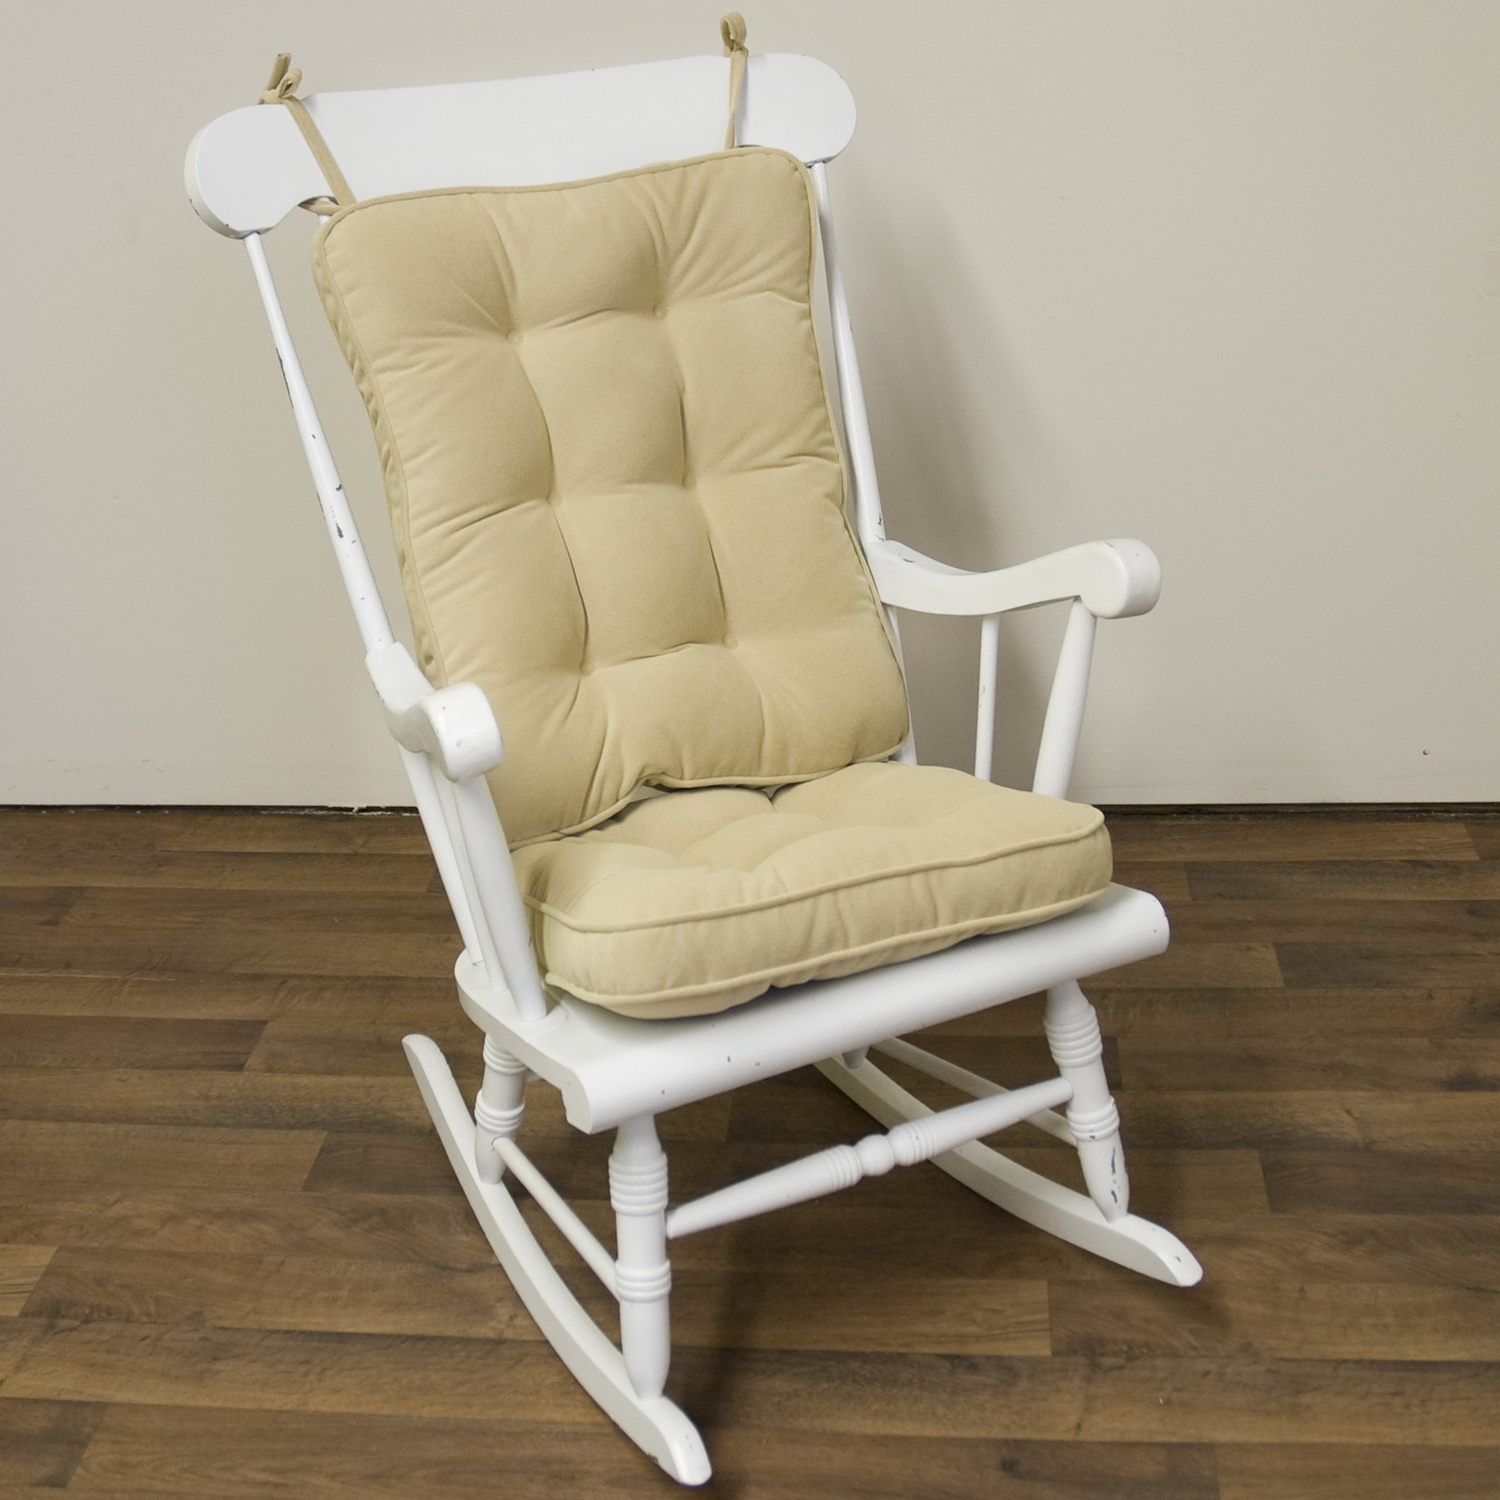 Newest Piece Rocking Chair Cushion Set Cream Color Seat Back Nylon In Rocking Chairs With Lumbar Support (View 6 of 15)